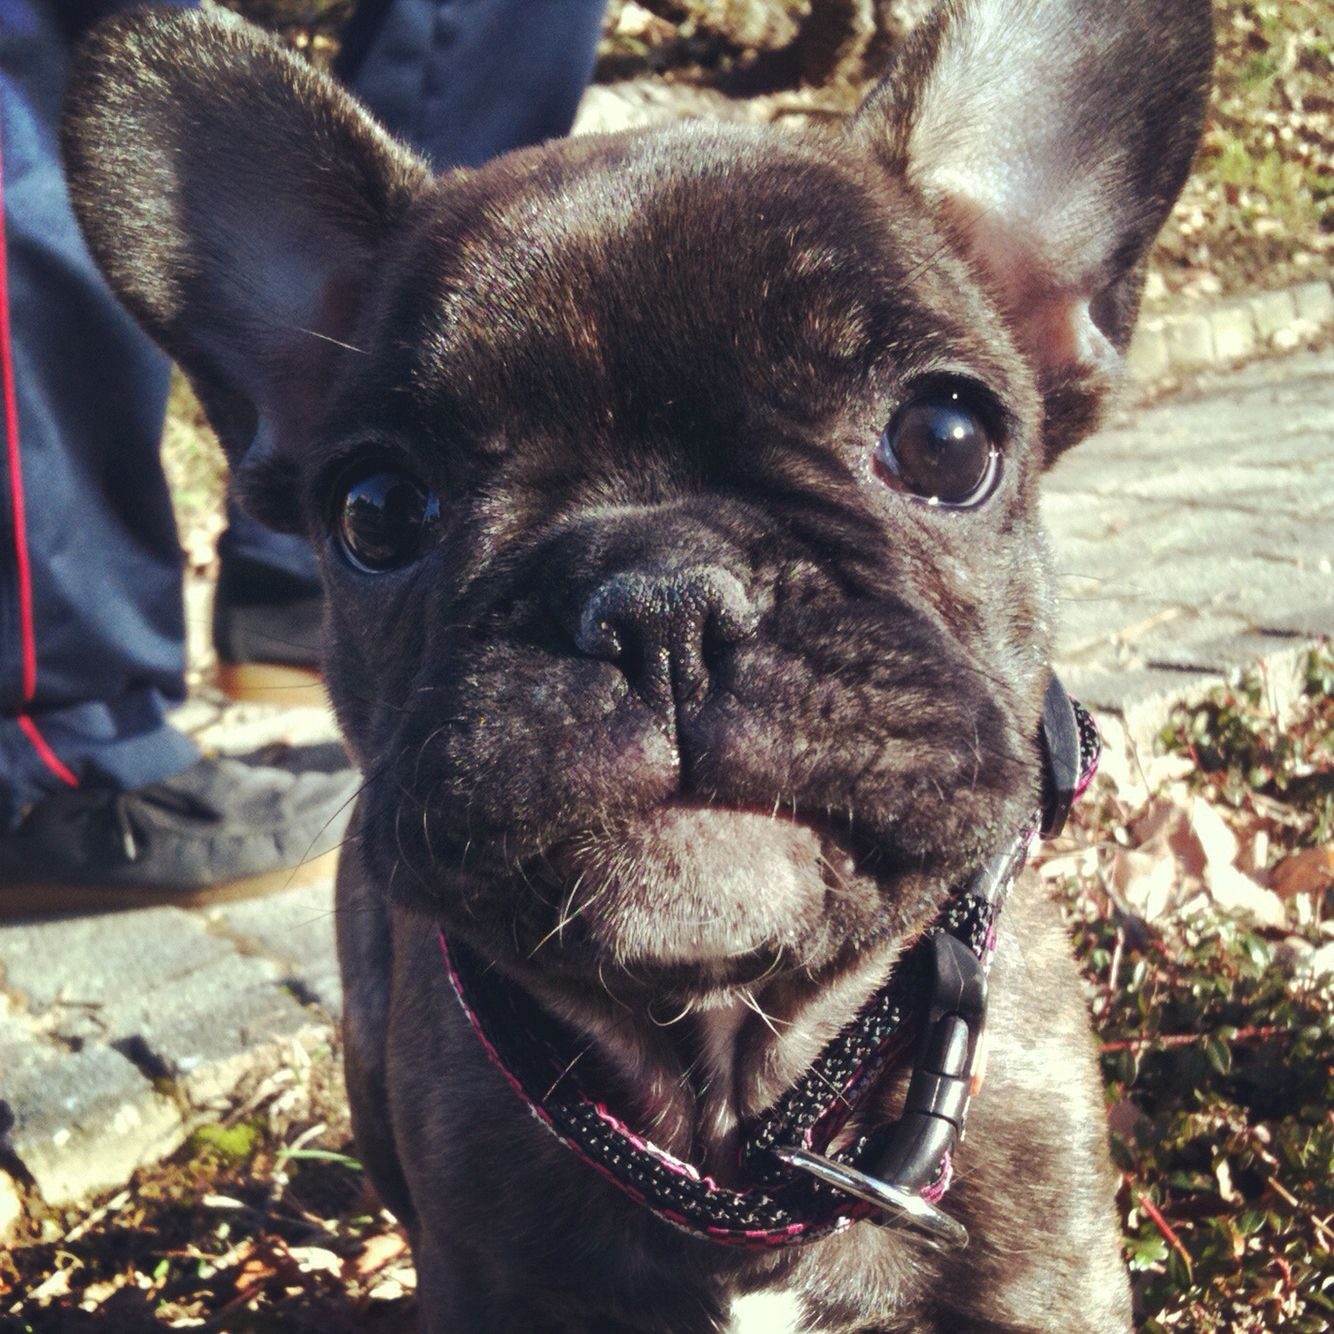 Baby Coco #frenchbulldog#puppy#bouly#coco#cocothefrenchiebulldog